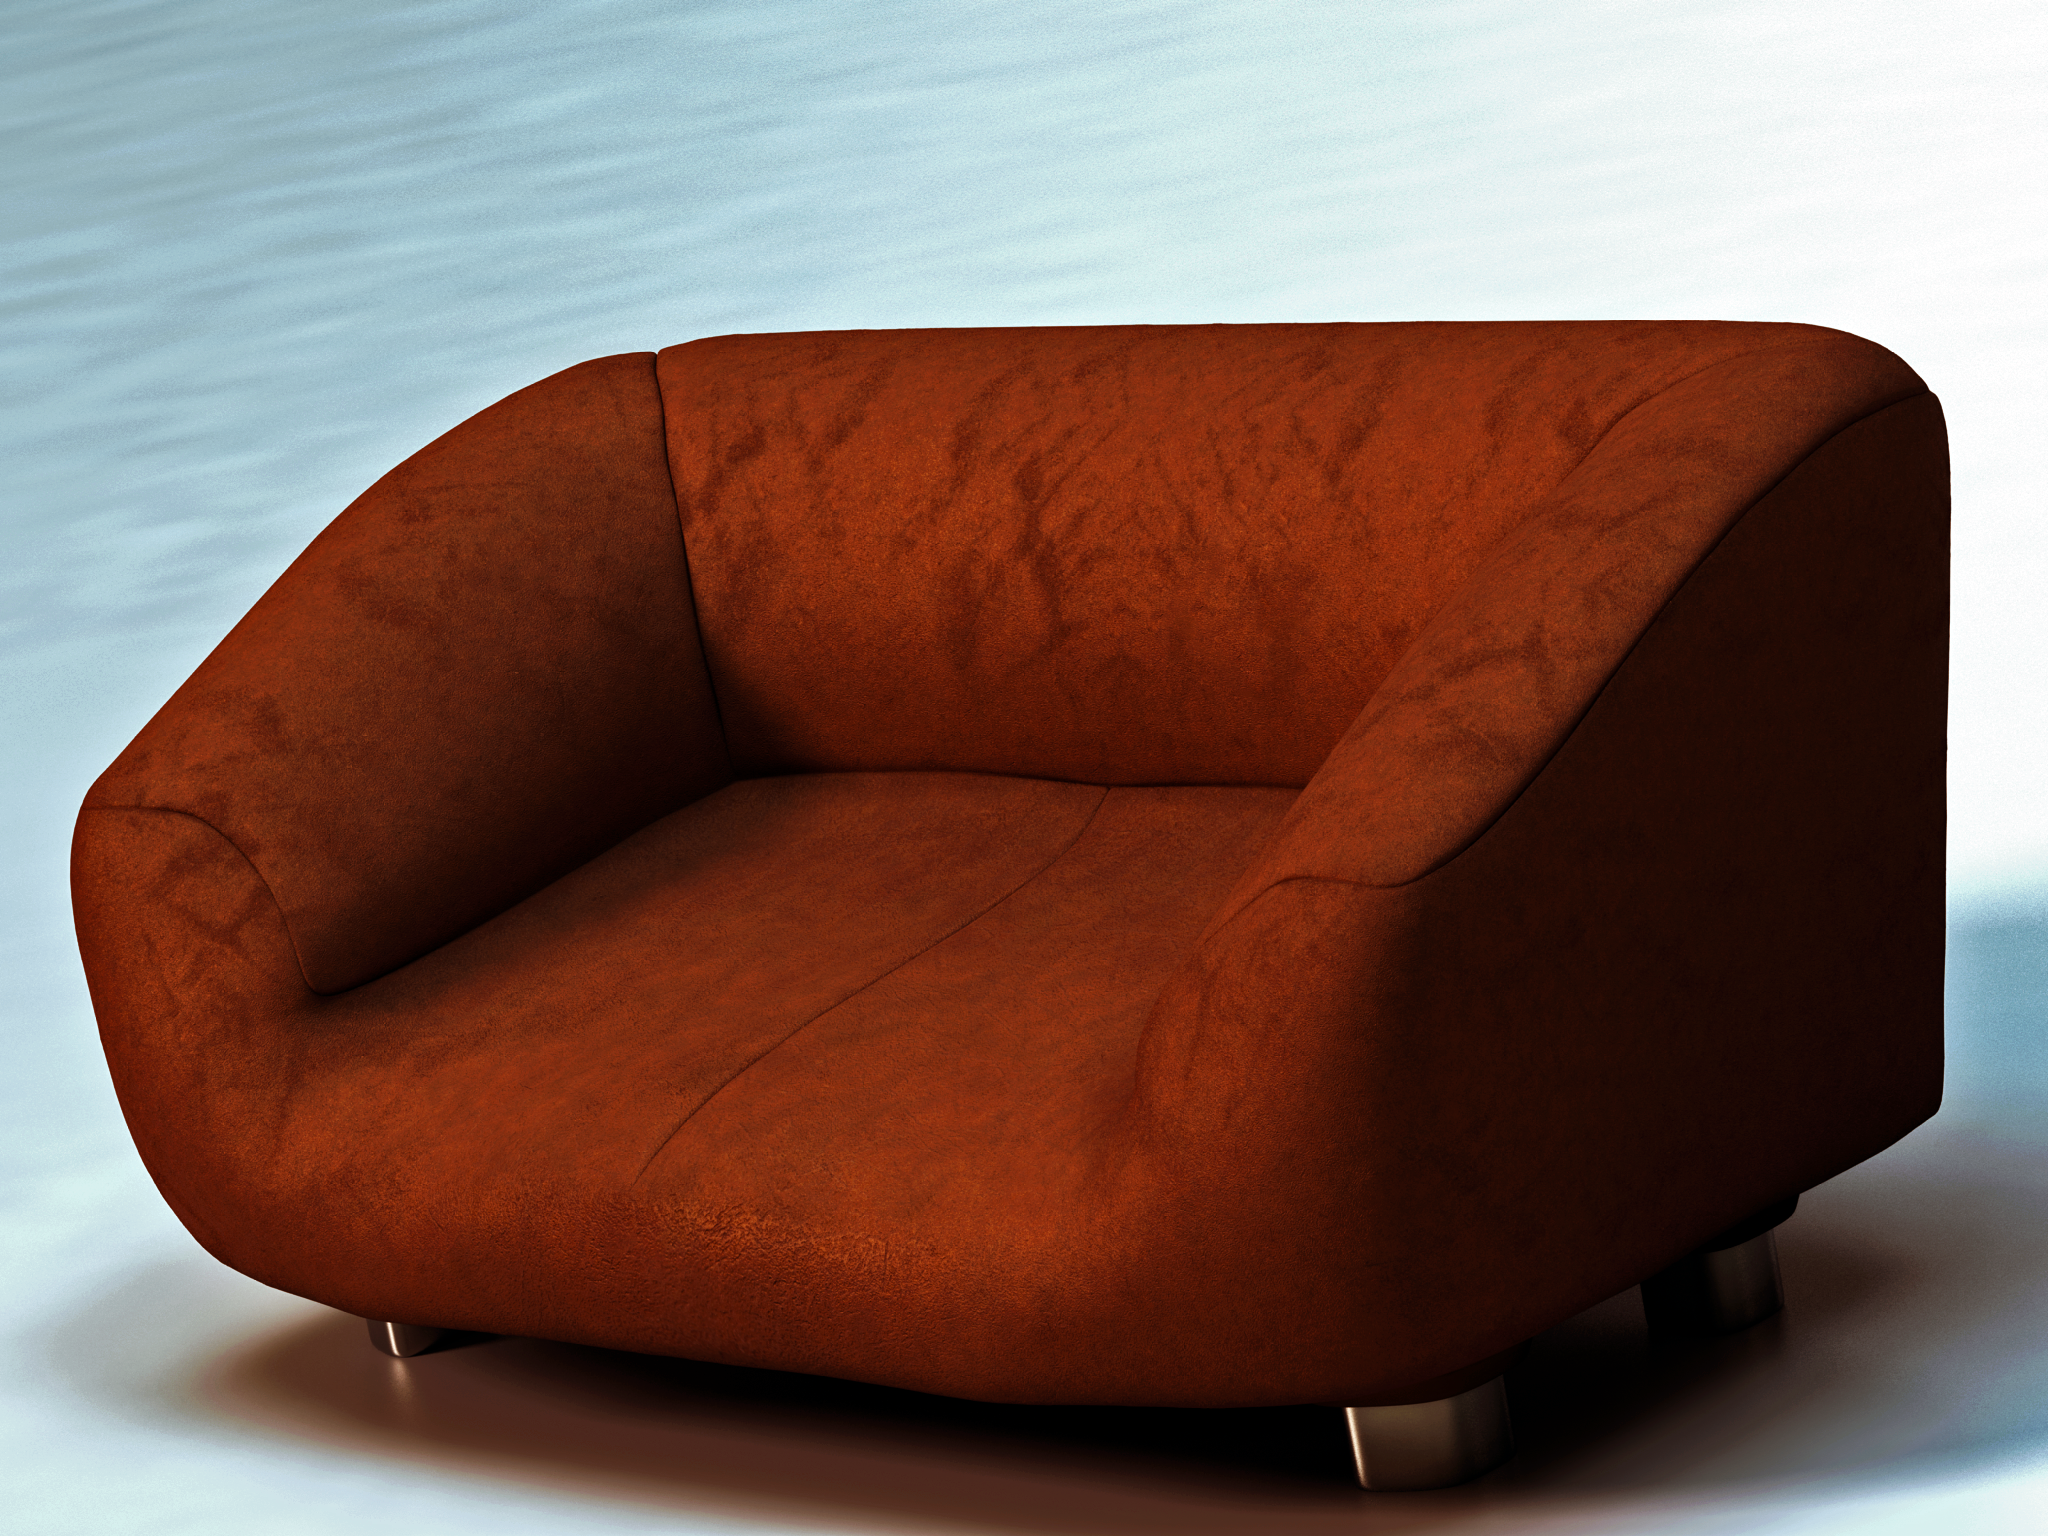 Couch by Ke7dbx, on Flickr